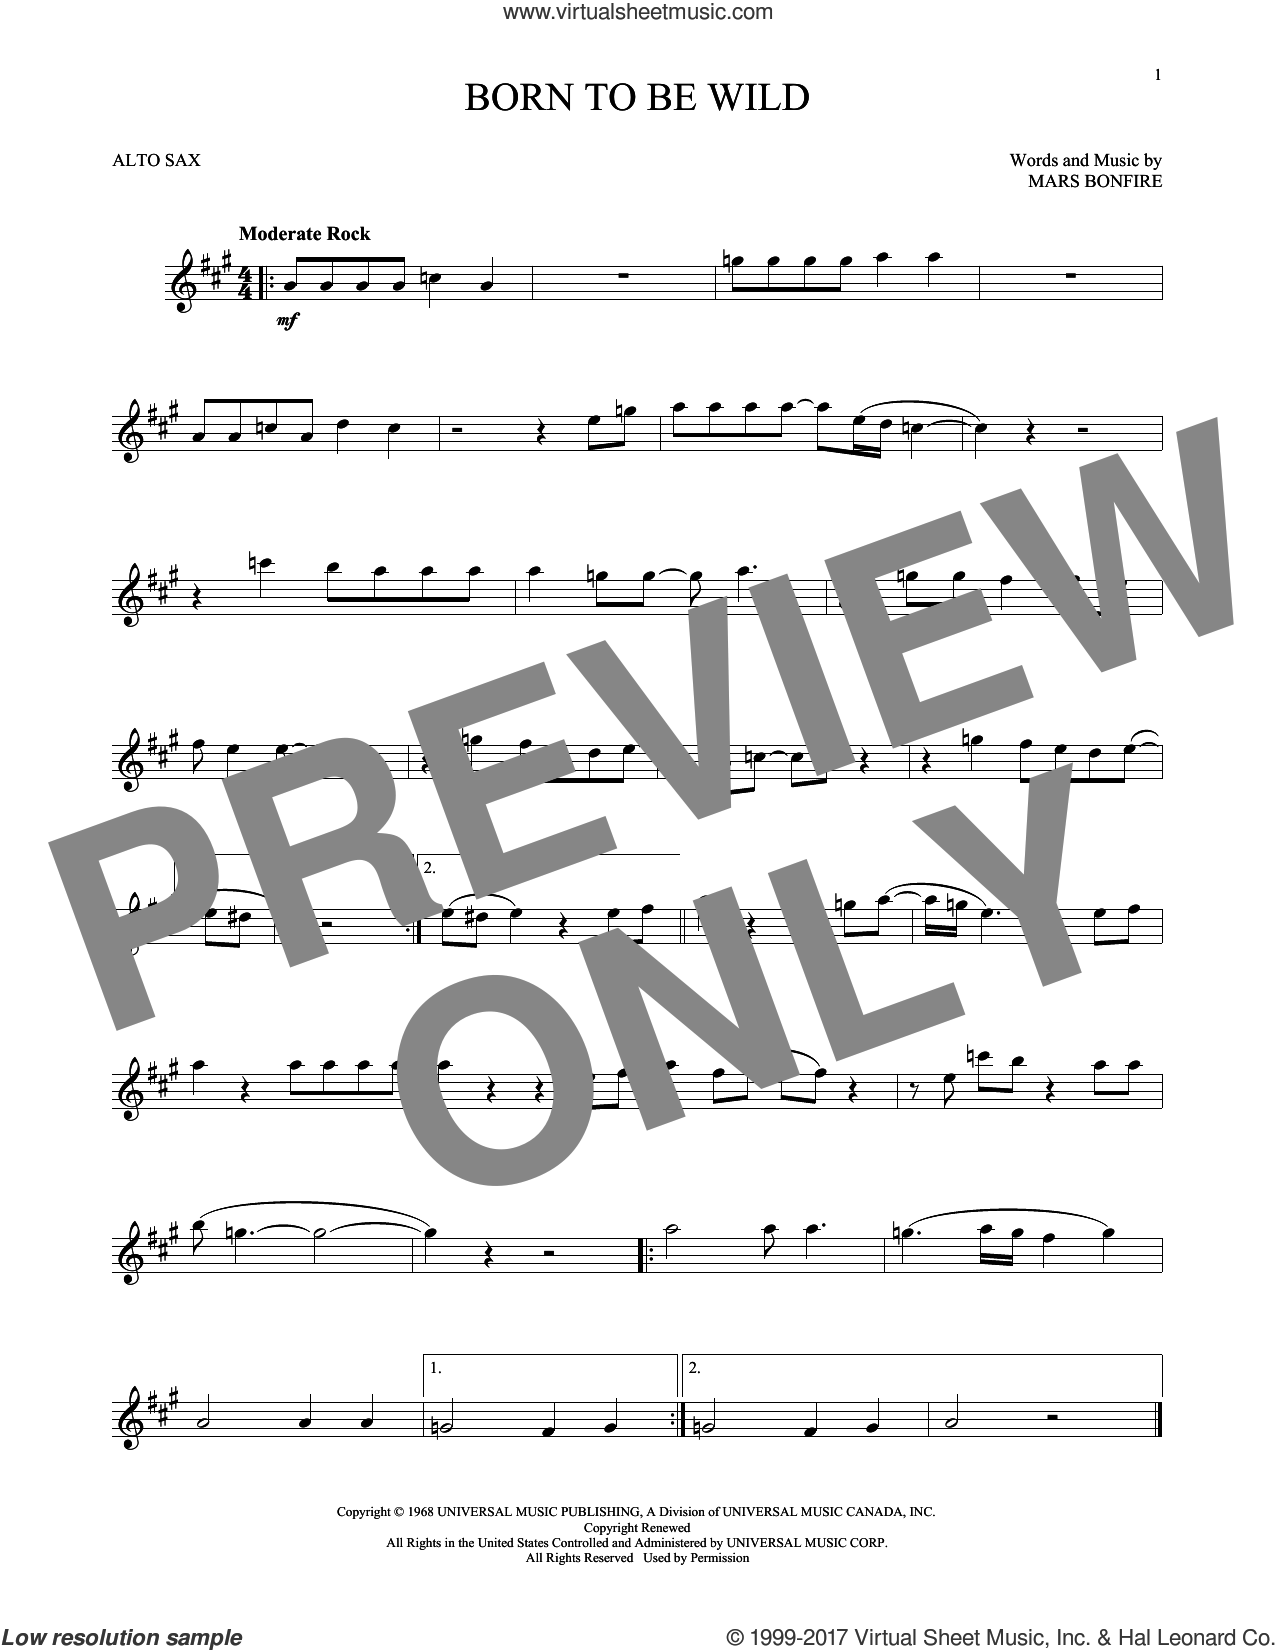 Born To Be Wild sheet music for alto saxophone solo by Steppenwolf and Mars Bonfire, intermediate skill level